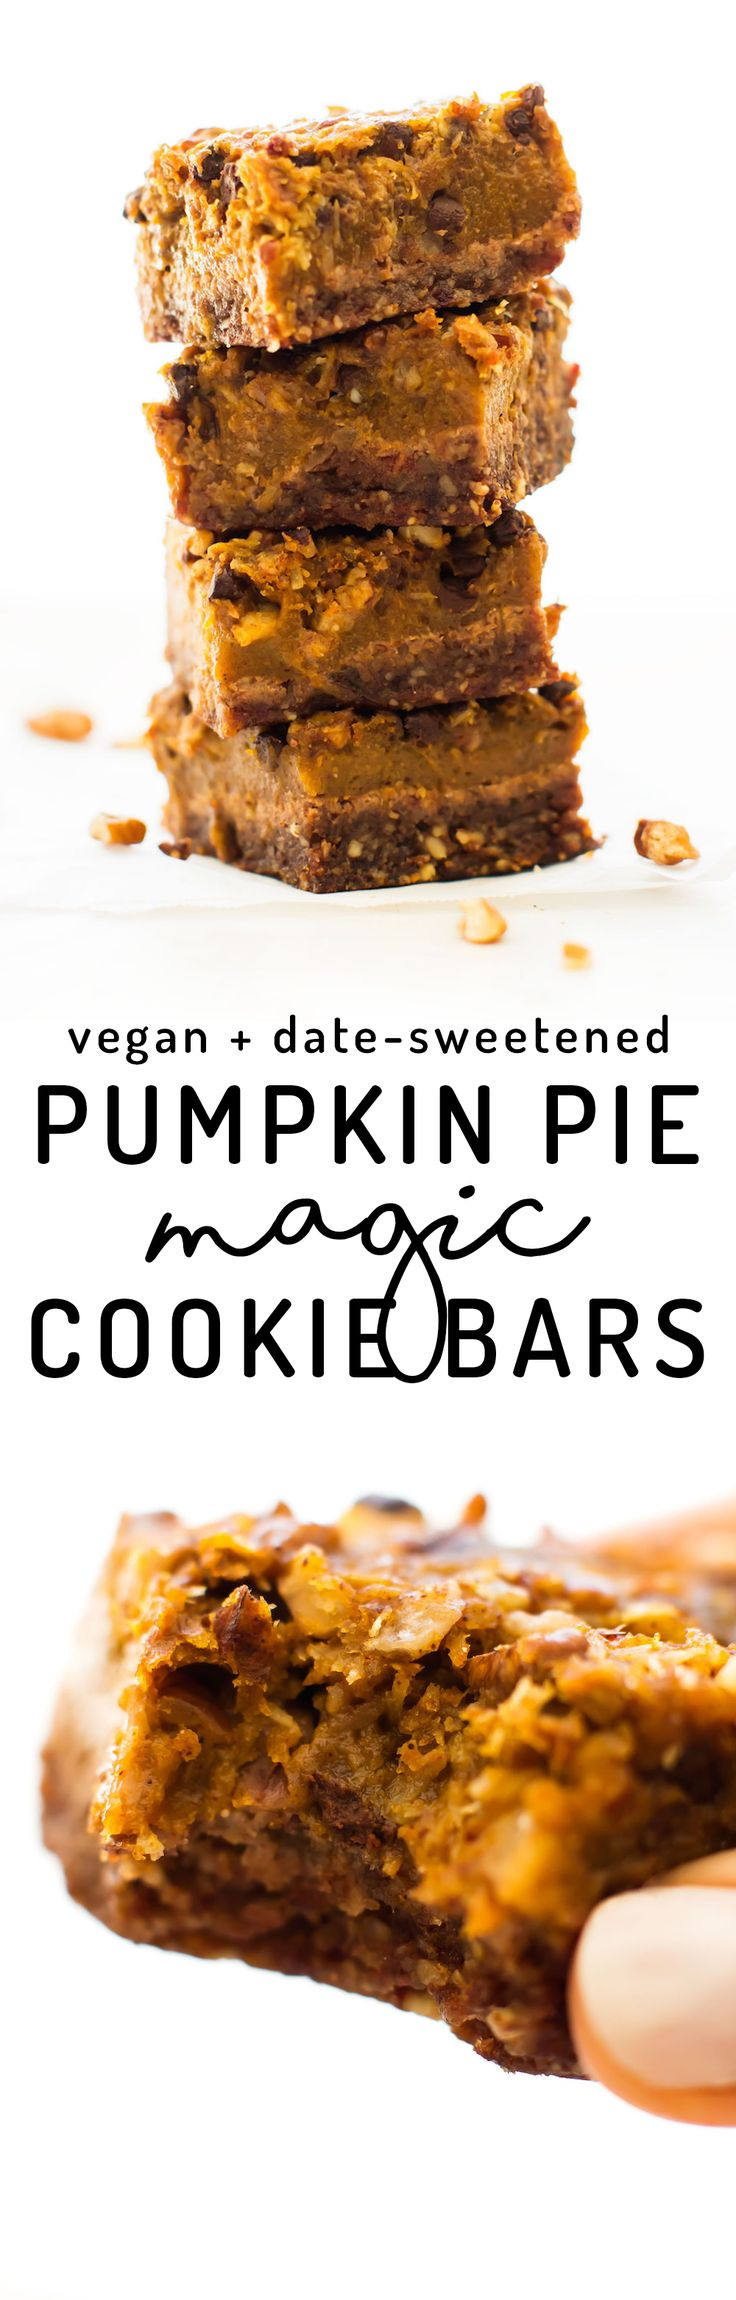 Your favorite fall pie meets gooey cookie goodness in these Pumpkin Pie Magic Cookie Bars with pecan crust, date-sweetened filling, and lots of chocolate chips! Vegan, paleo, gluten-free, refined sugar-free.